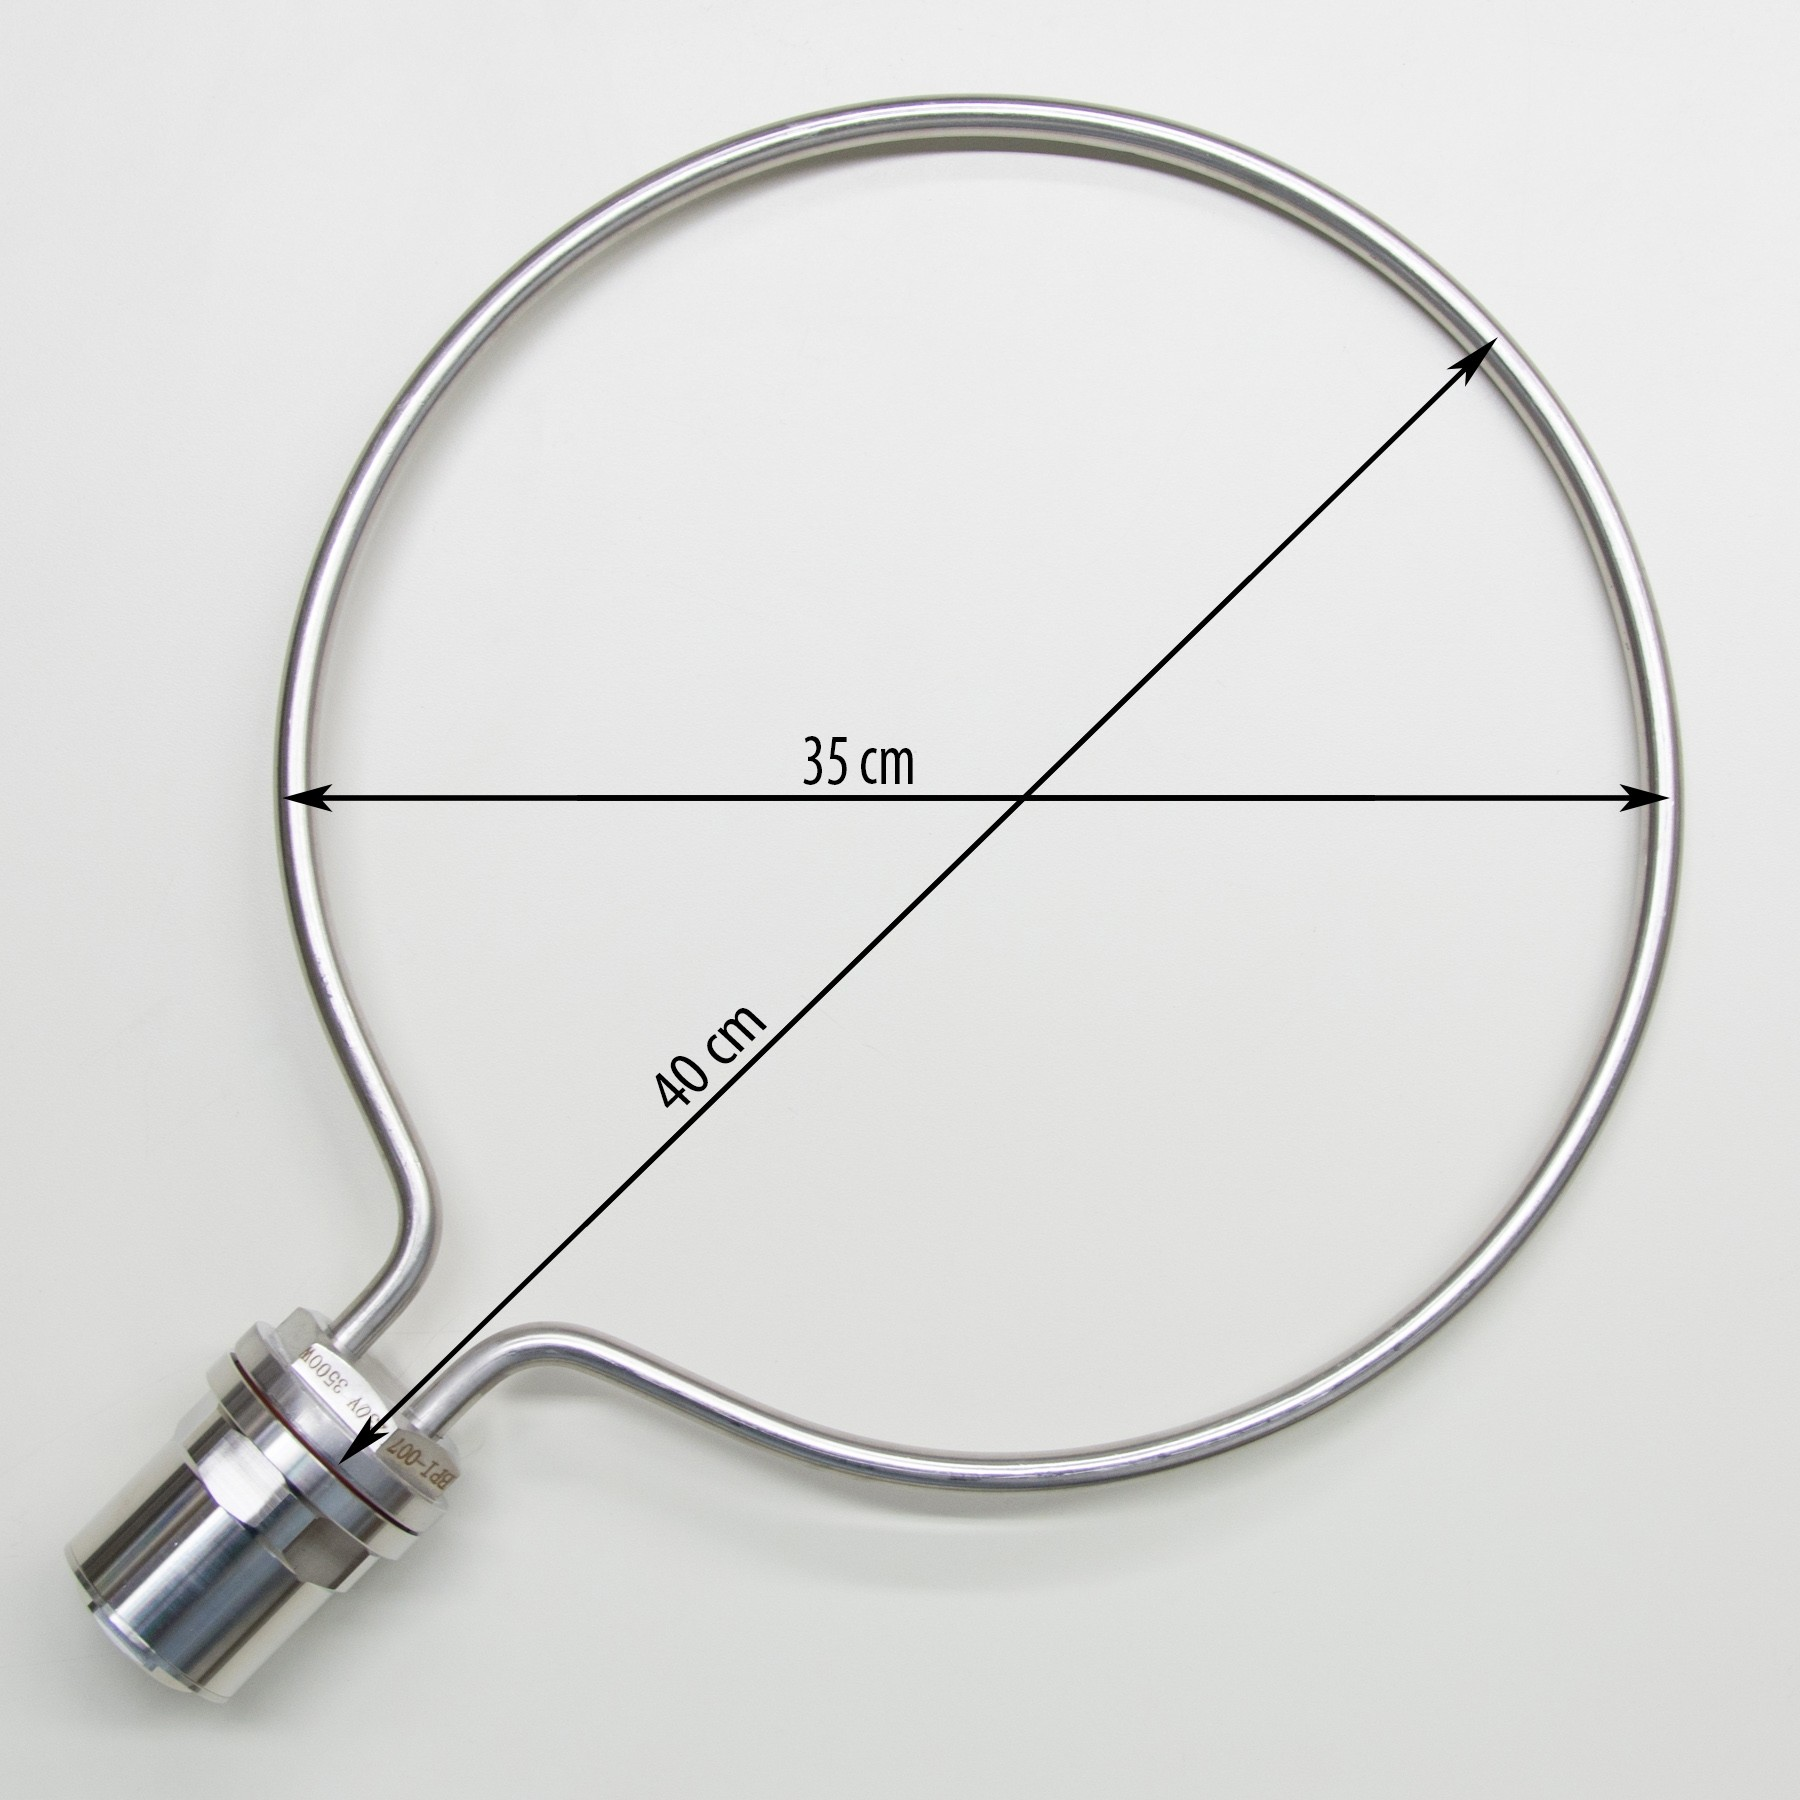 Round Heating Element for brewing, 35cm diameter, 3500W